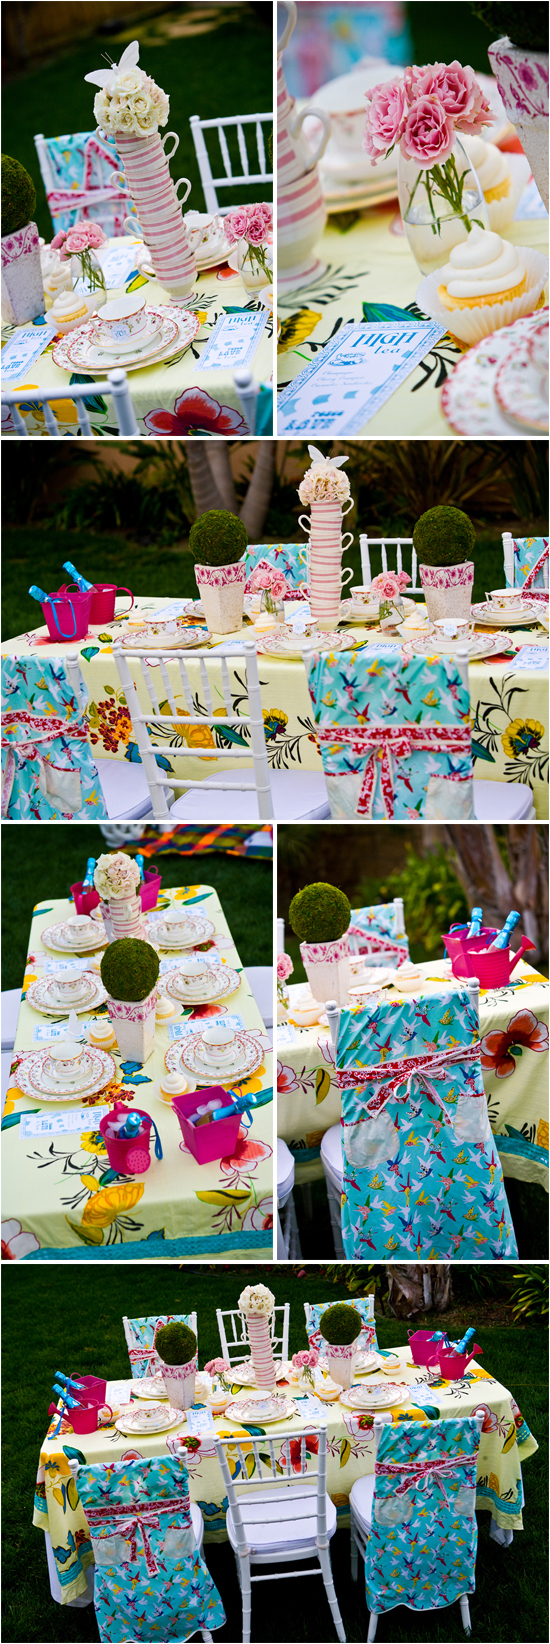 DIY Decor: Alice in Wonderland - Project Wedding